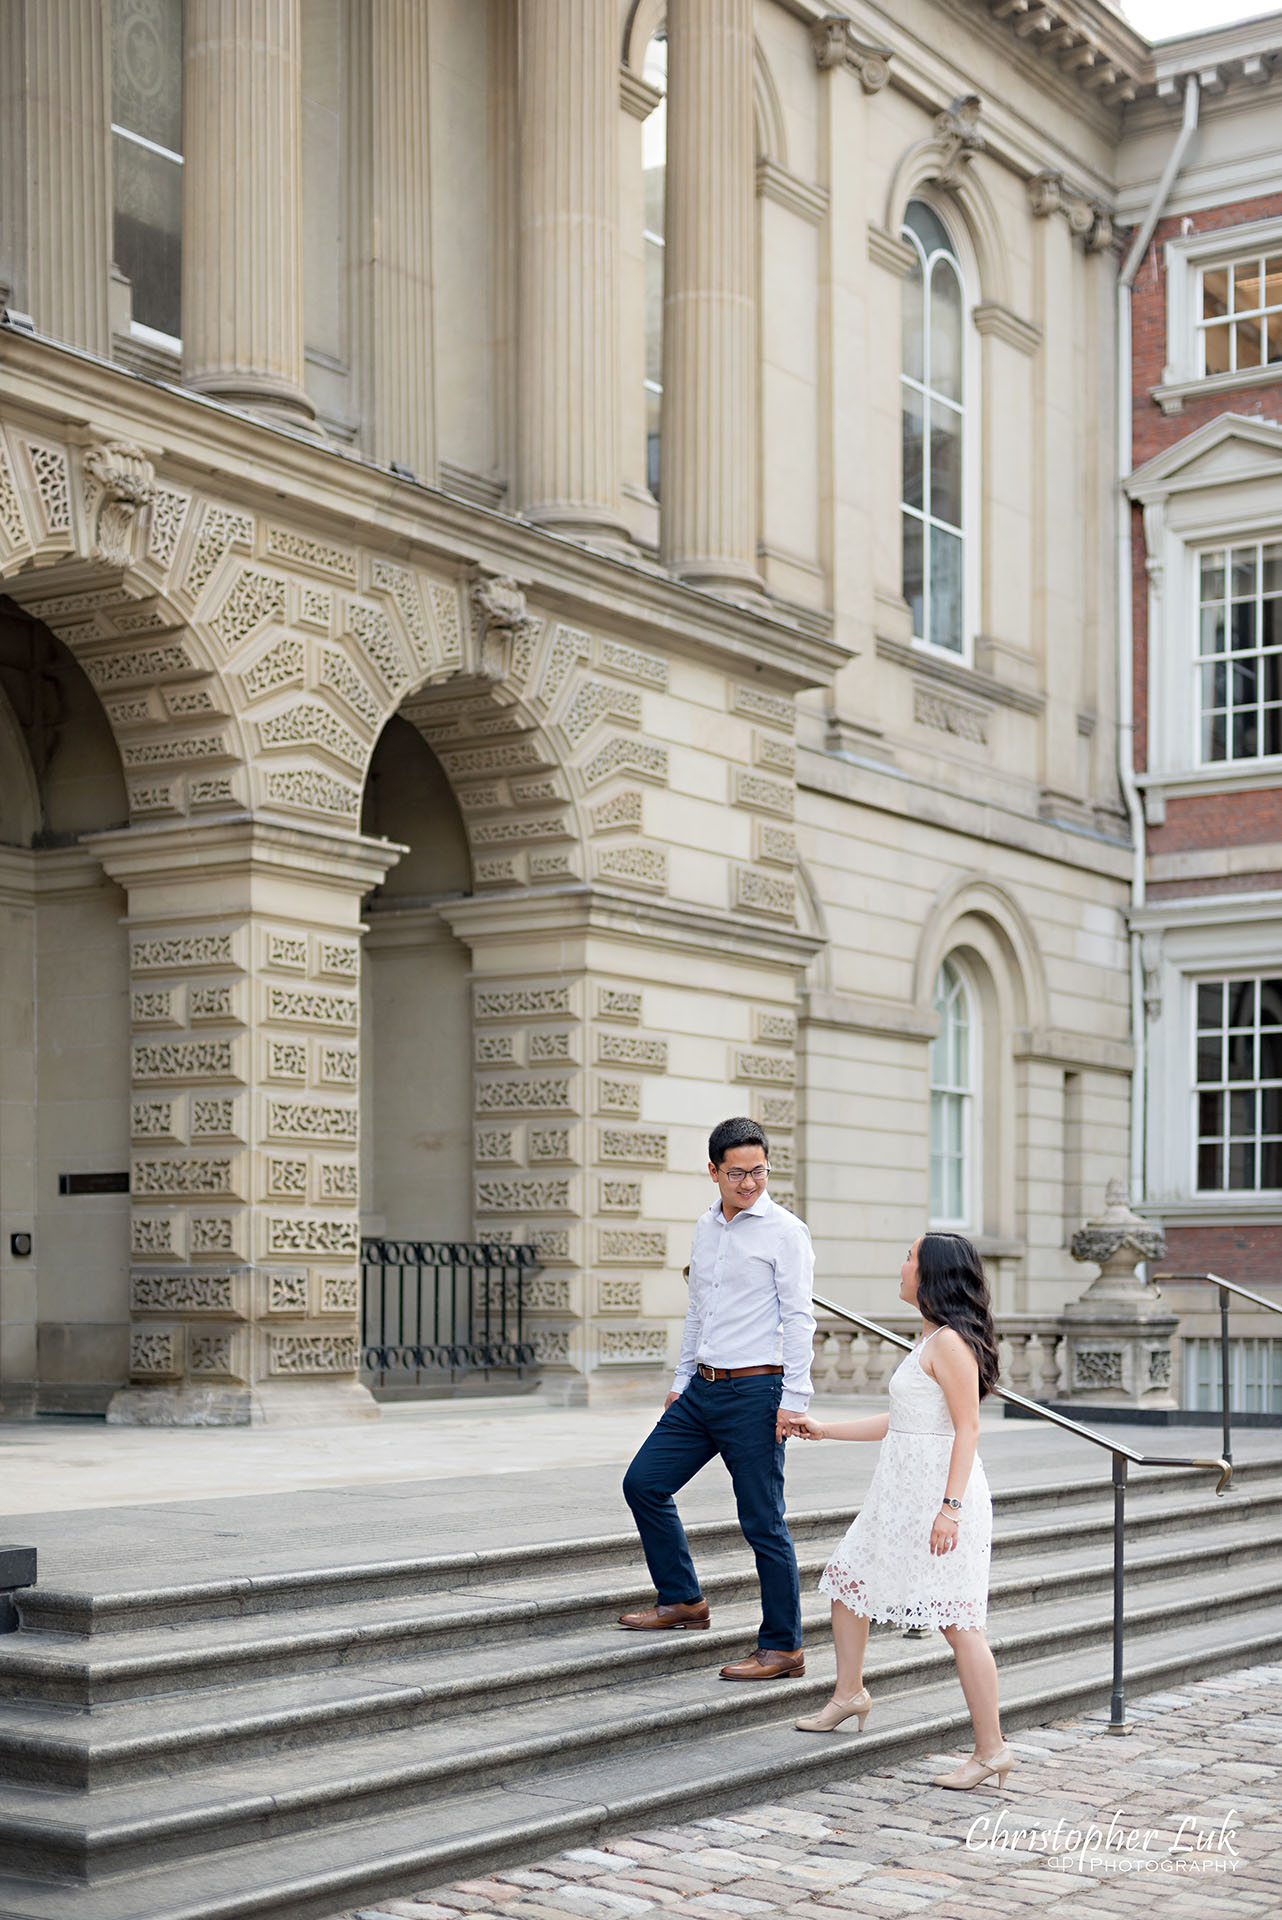 Christopher Luk Wedding Photographer Osgoode Hall Toronto Bride Groom Main Historic Building Front Cobblestone Holding Hands Walking Together Stairs Staircase Portrait Christopher Luk Wedding Photographer Osgoode Hall Toronto Bride Groom Main Historic Building Front Cobblestone Holding Hands Walking Together Looking at Each Other Portrait Natural Candid Photojournalistic